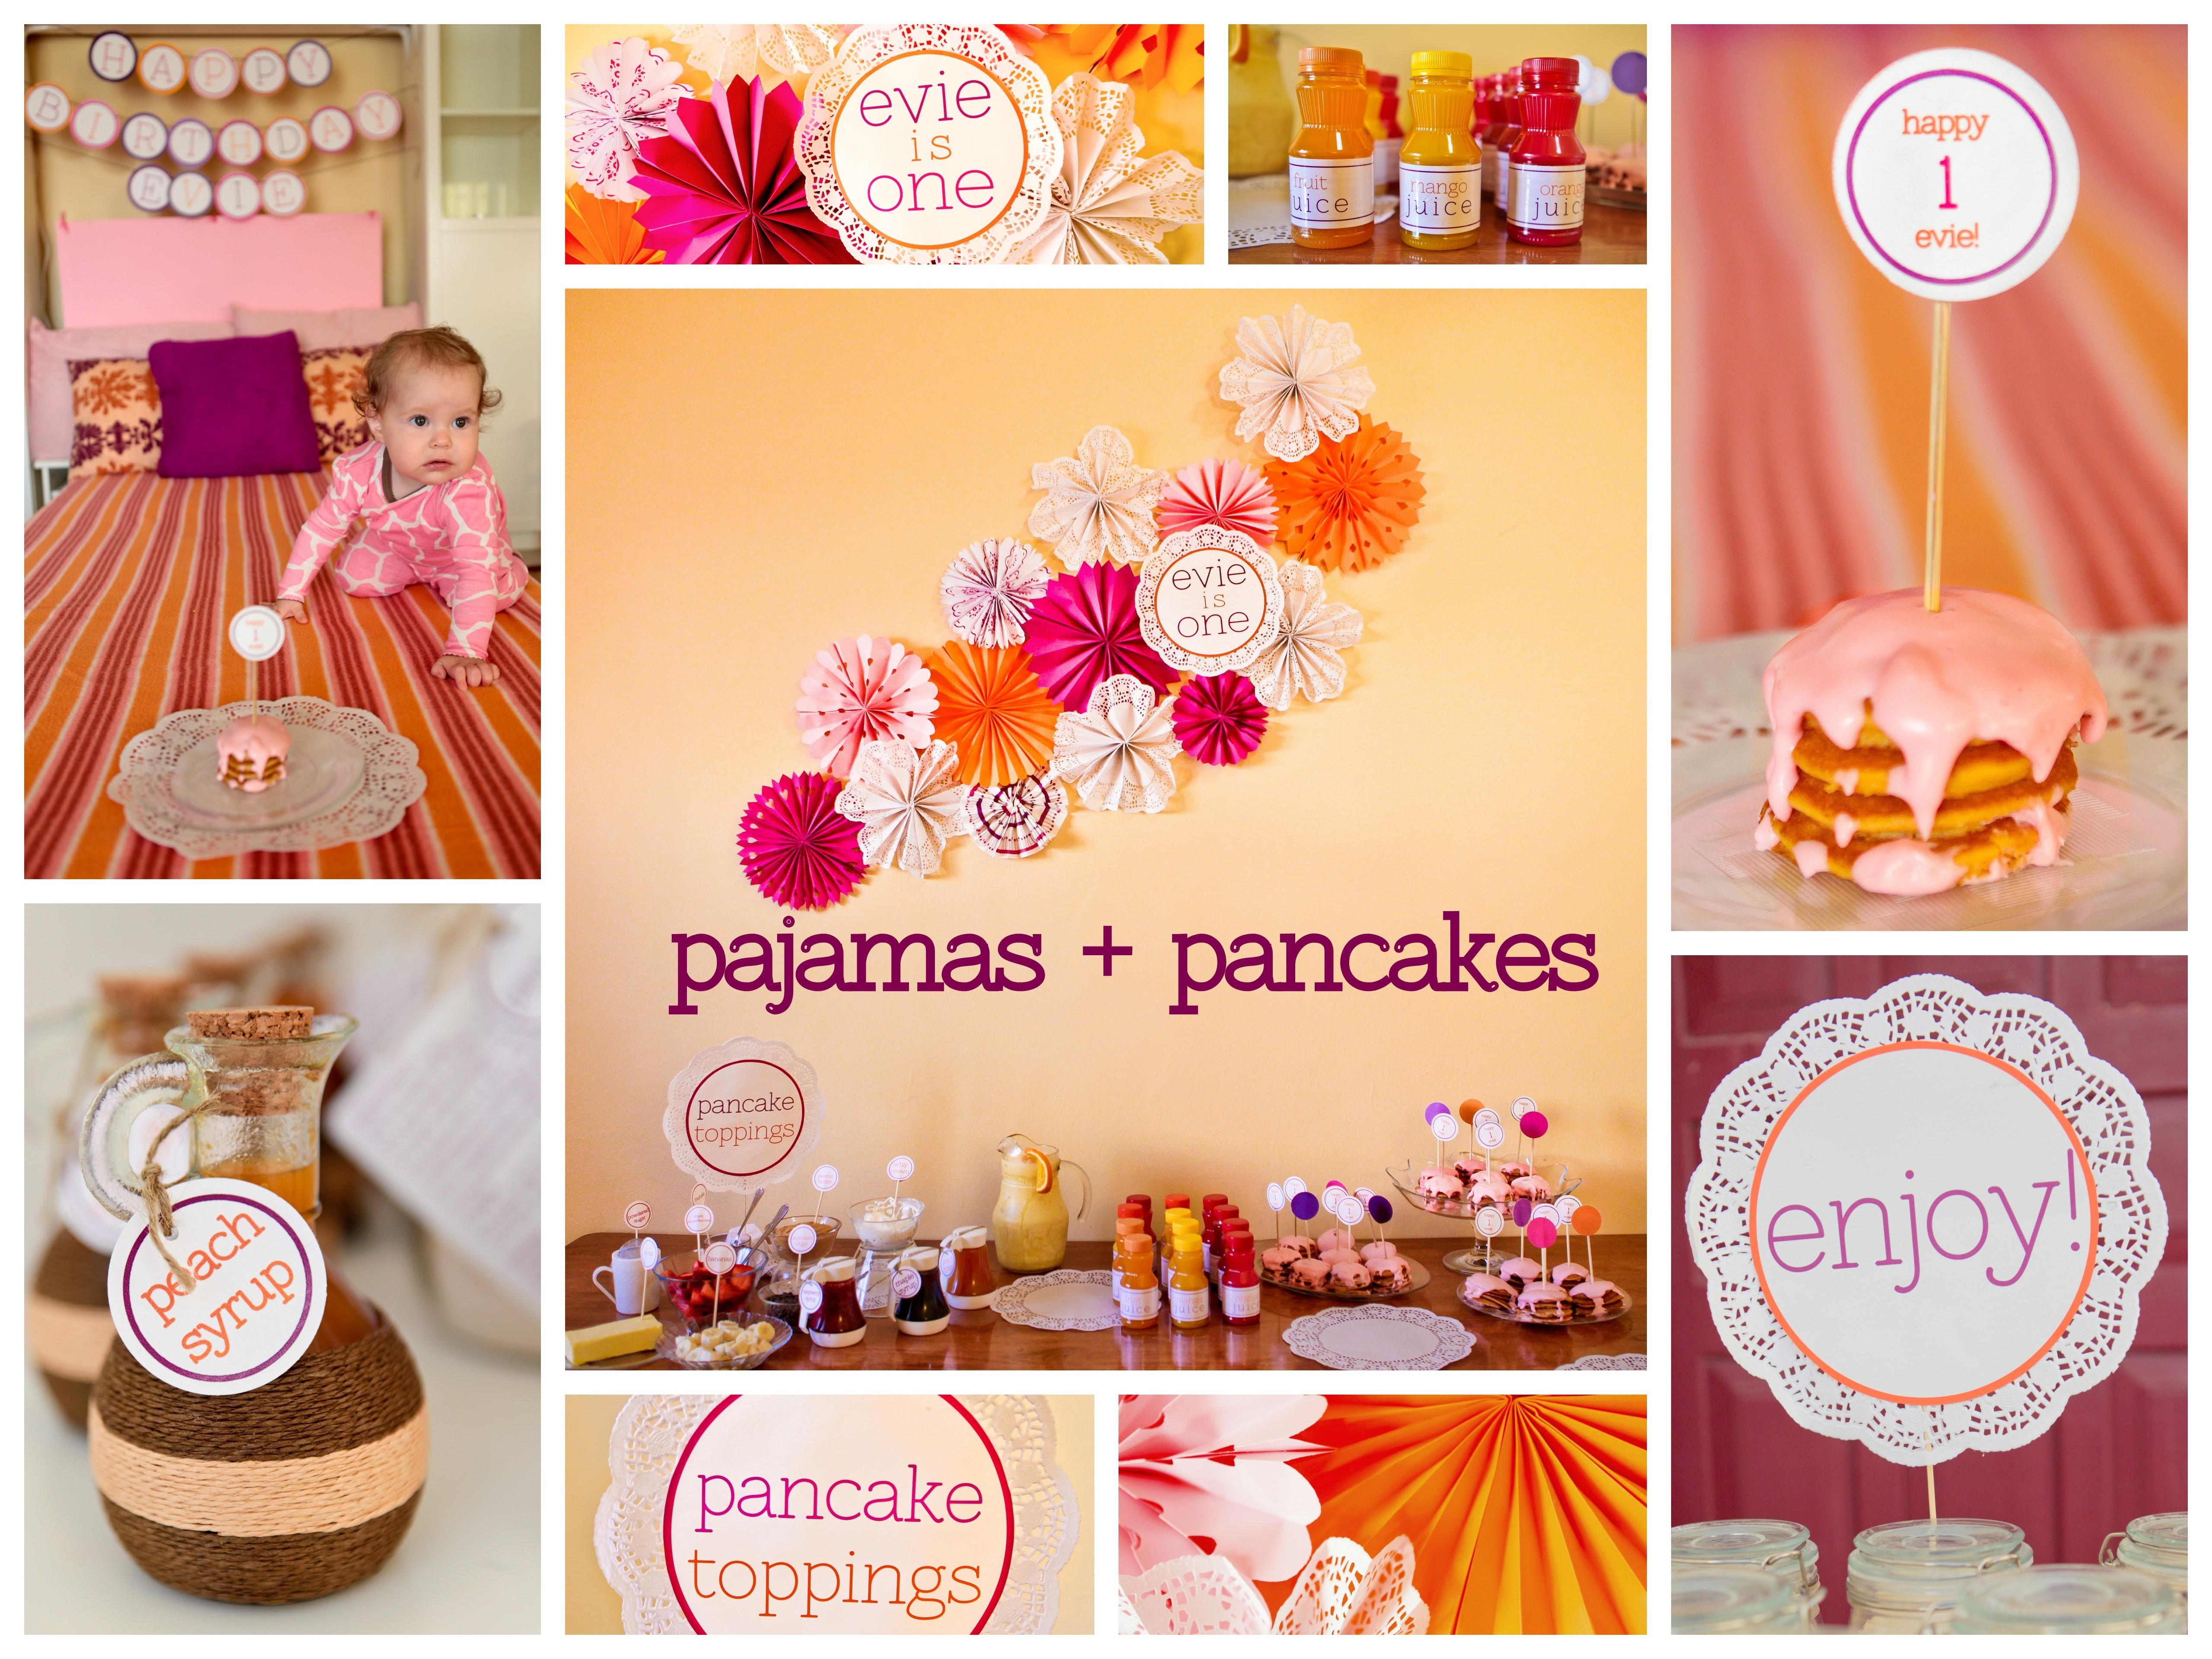 Pajamas pancakes first birthday party about 4 months ago keadryn and i started talking about evies birthday party she is going to be a party planner i can feel it she loves the brainstorming filmwisefo